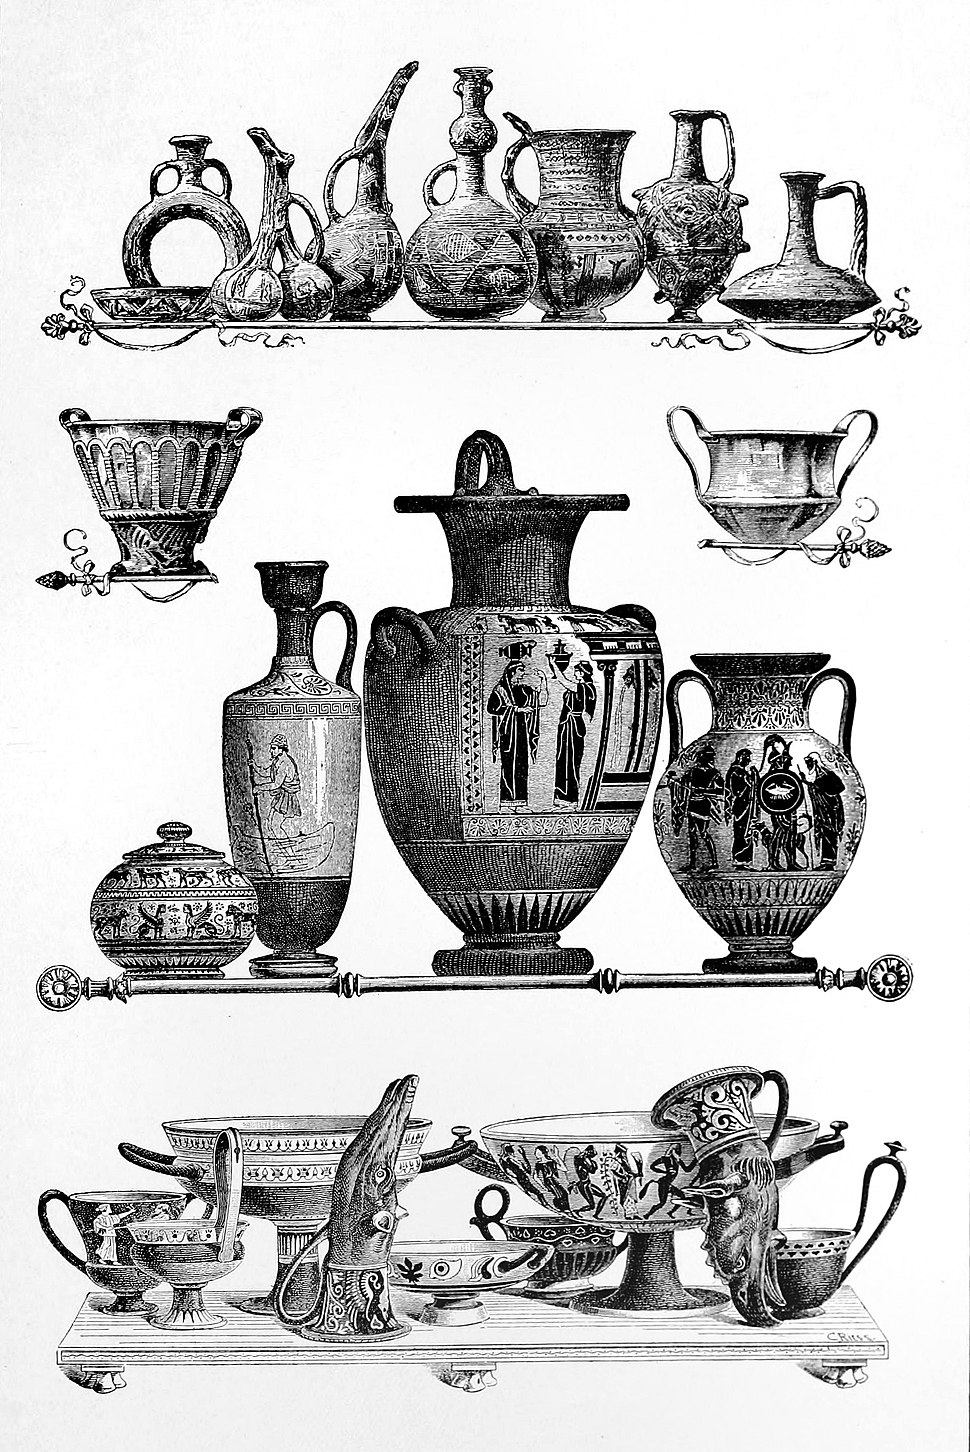 Art relics from the Ionian cities of Asia